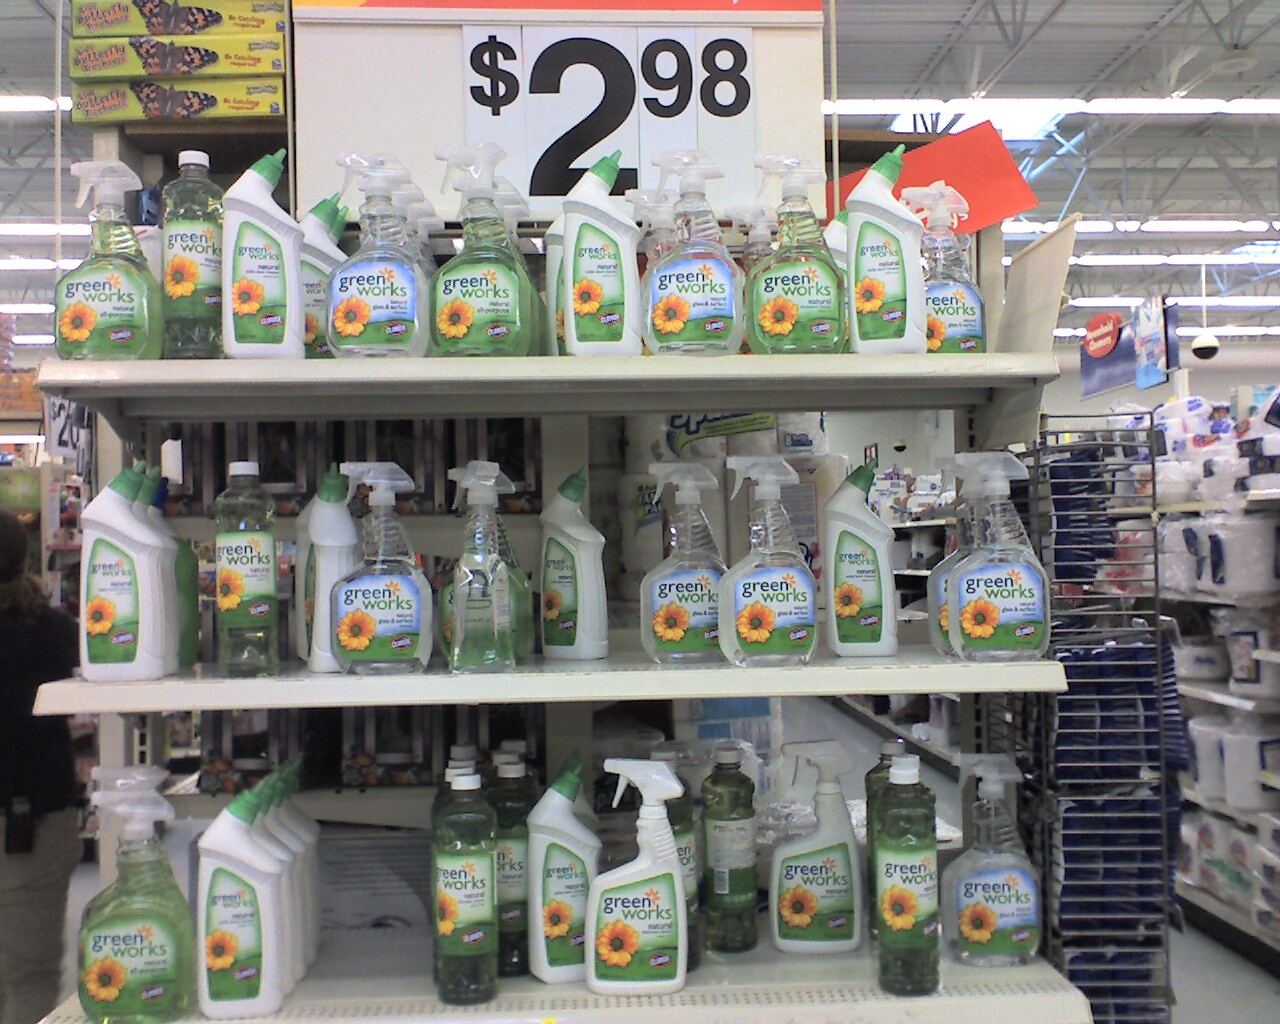 green-works-bottles.jpg